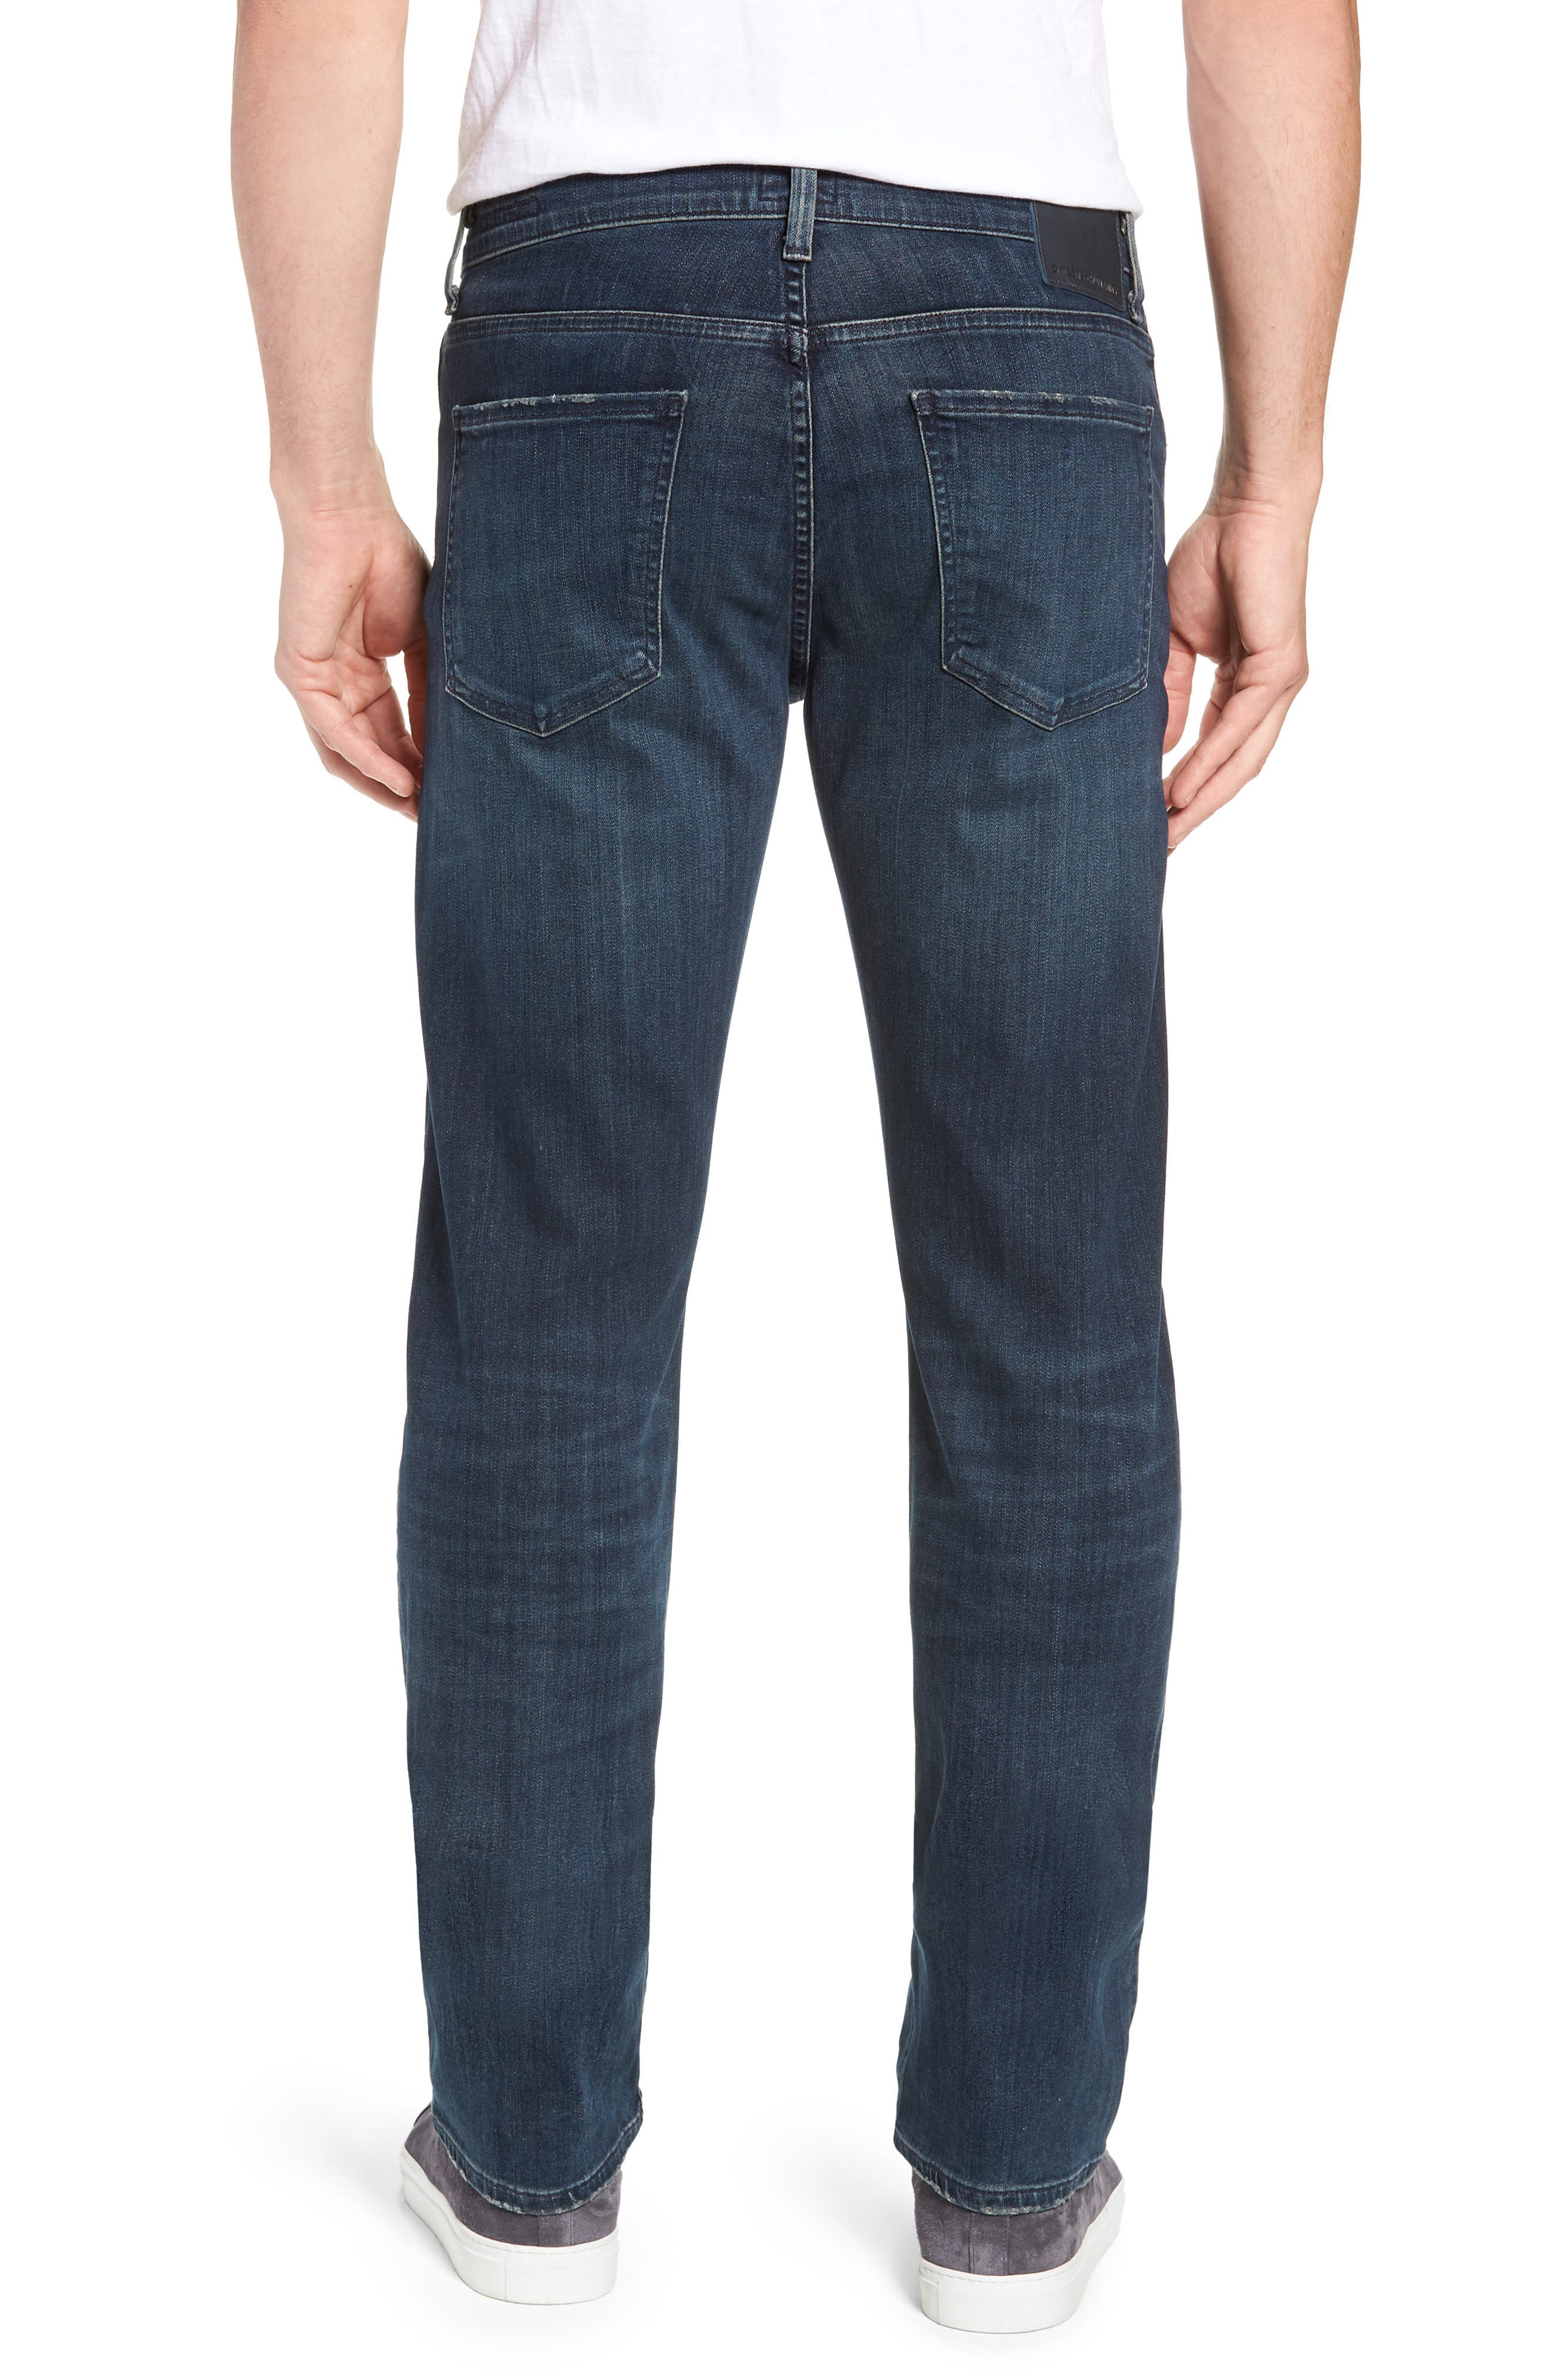 PERFORM - Sid Straight Leg Jeans,                             Alternate thumbnail 2, color,                             NORLAND